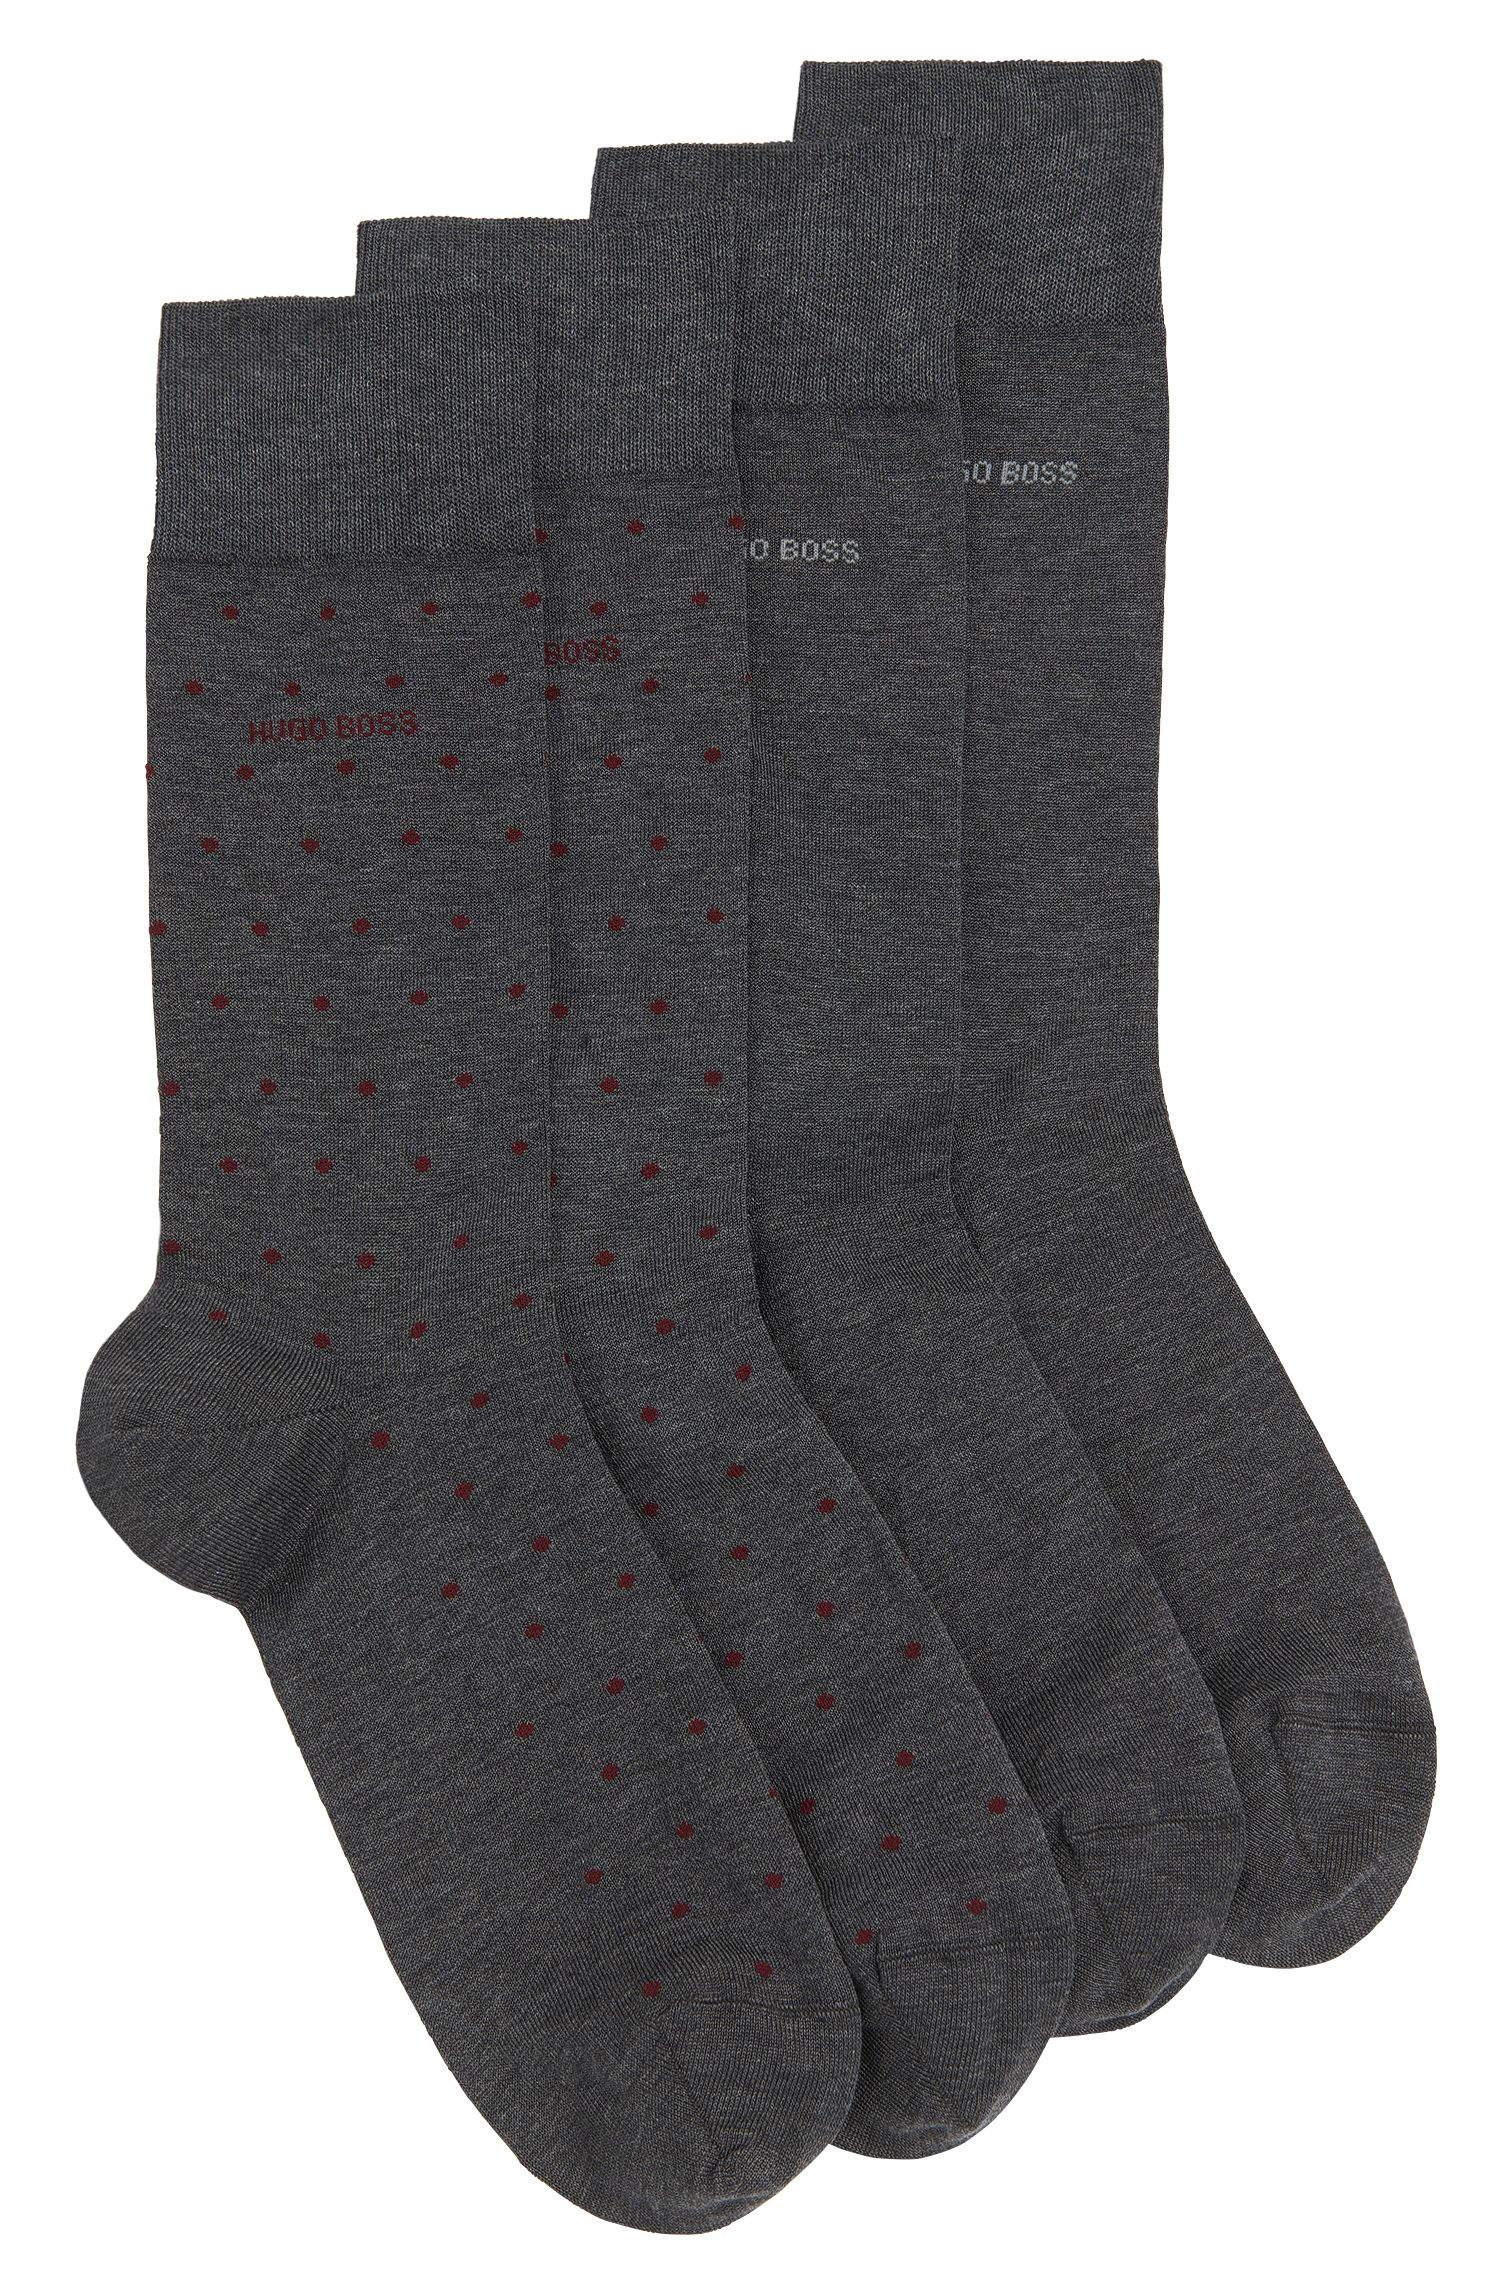 Polka-dot pattern socks in cotton blend in a double pack: 'Twopack RS Design'